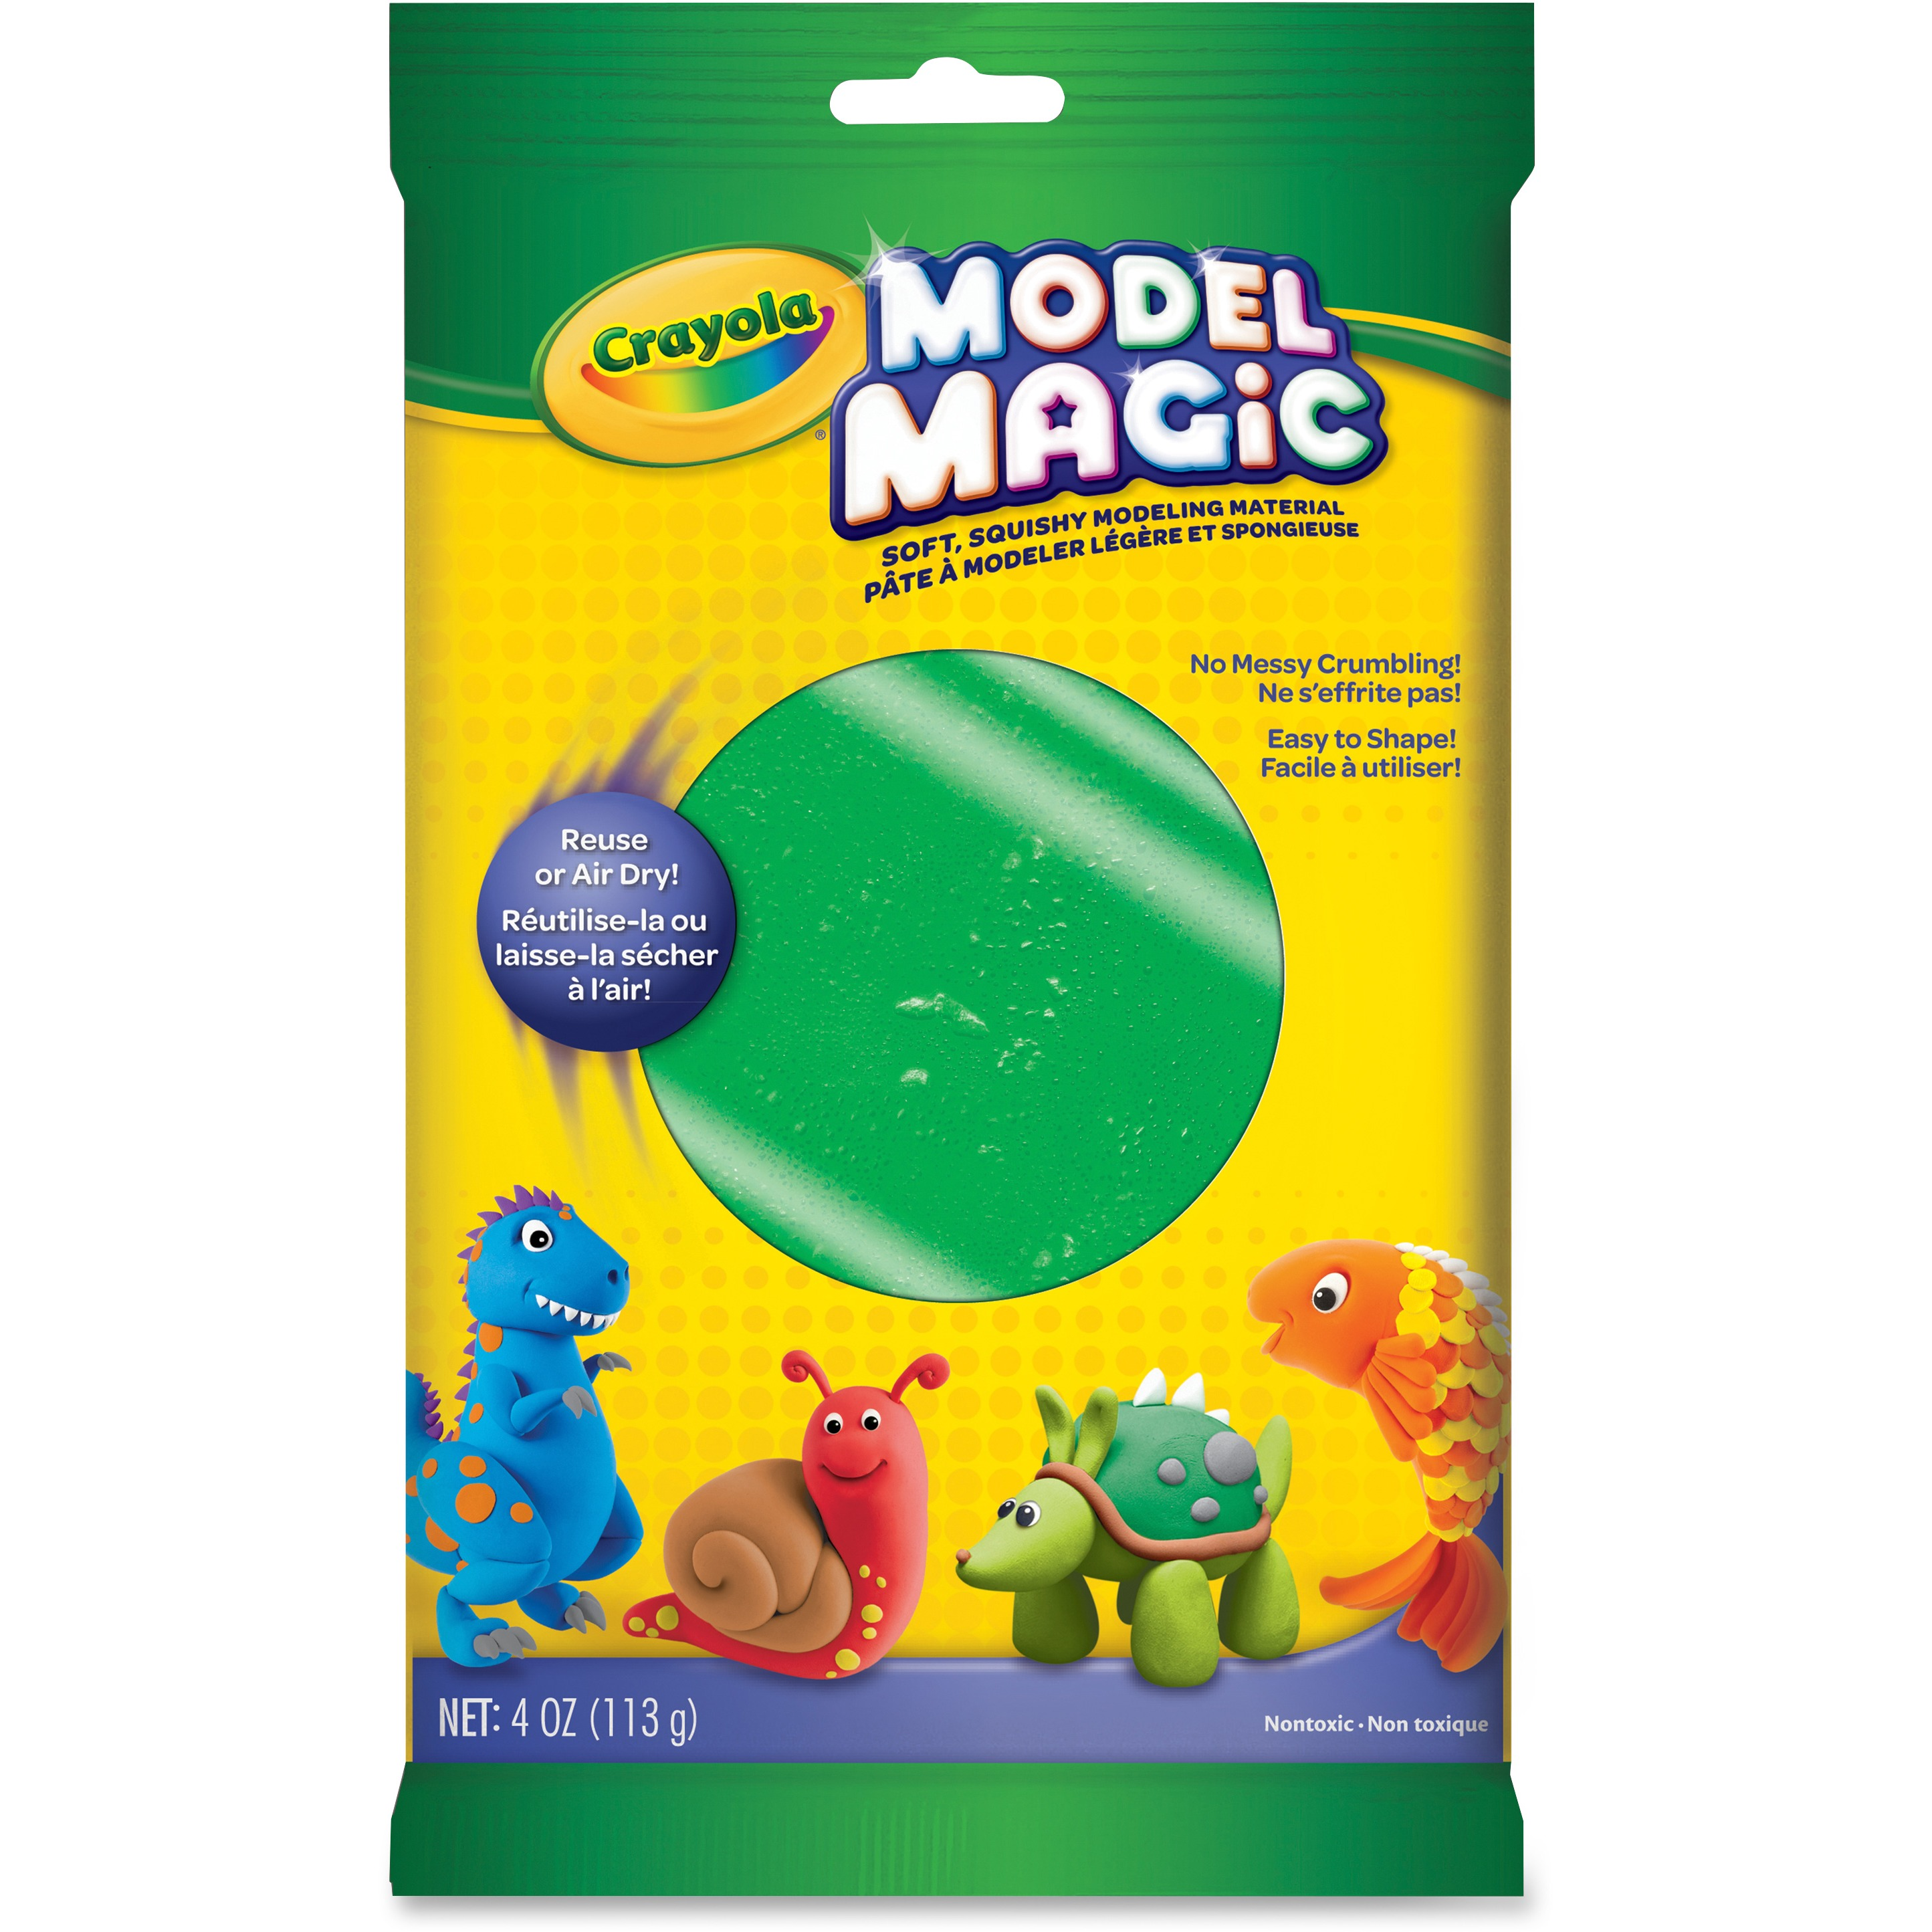 Crayola Model Magic, 4 oz, Green